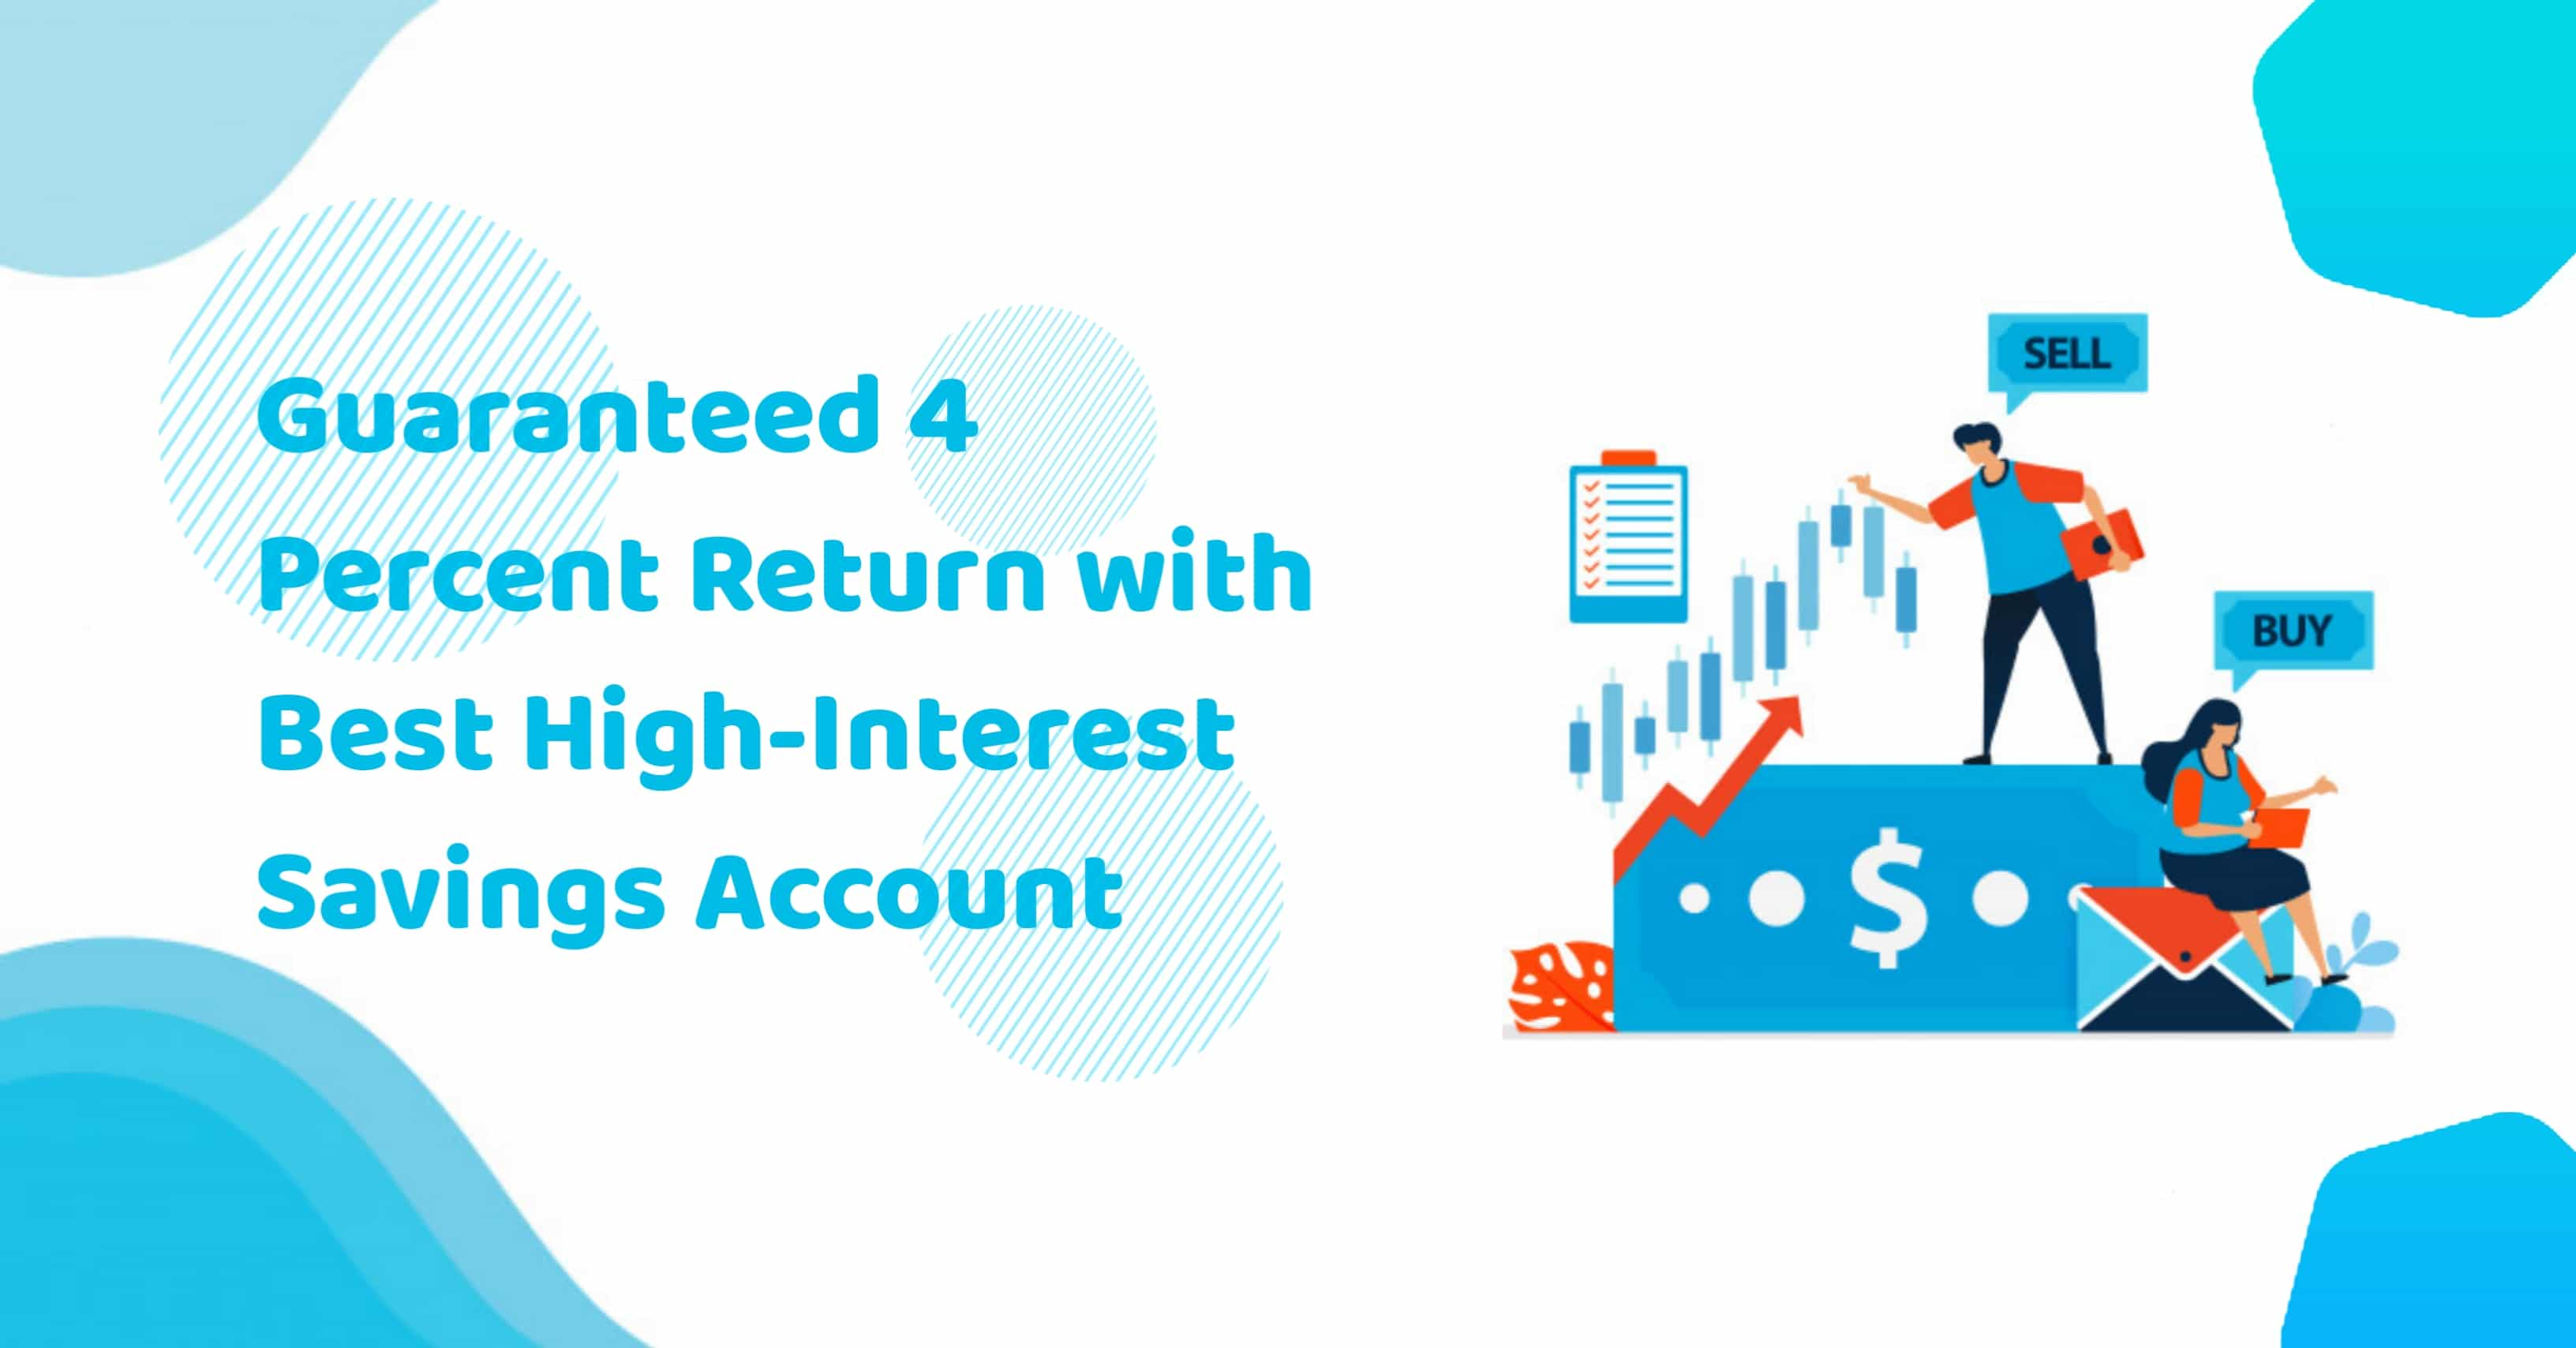 Guaranteed 4 Percent Return With Best High Interest Savings Account